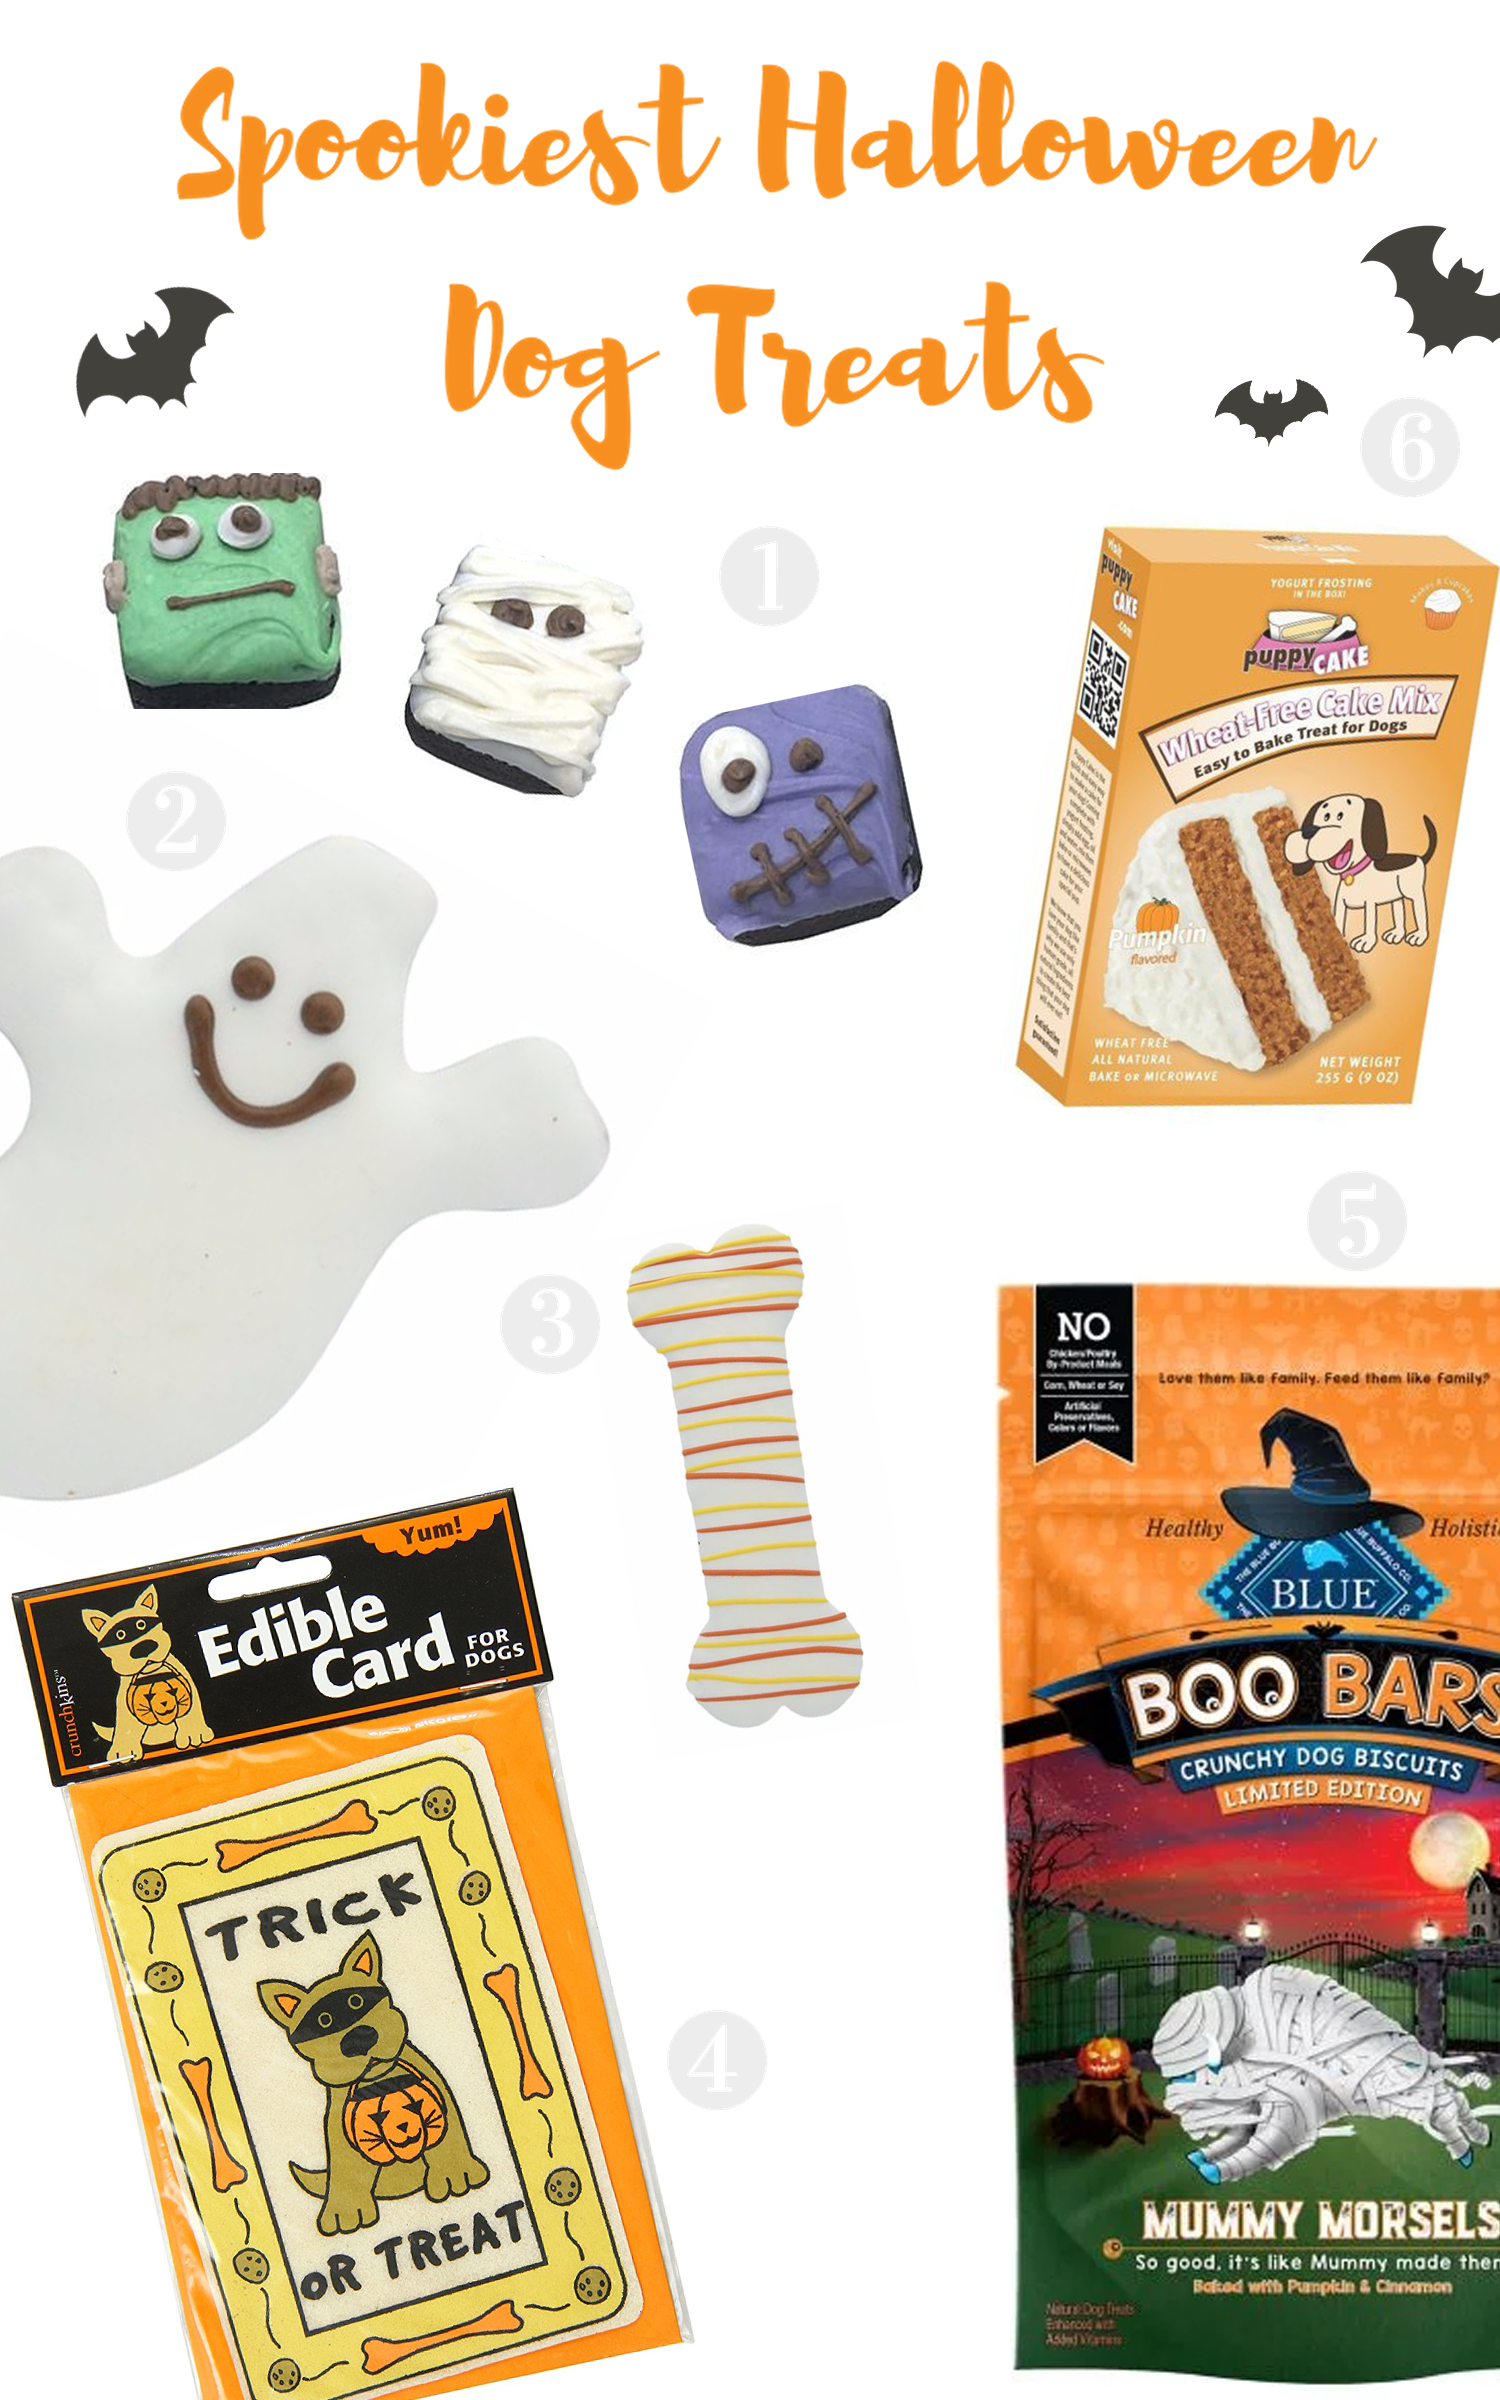 1) Monster Brownie Bites Dog Treats    2)    Ghost Pet Cookie    3)    Thrills and Chills Creepy Cookie Drizzled Bone     4)    Crunchkins Crunch Edible Card    5)    Blue Buffalo Chewy Halloween Boo Bars     6) Wheat-Free Pumpkin Cake Mix